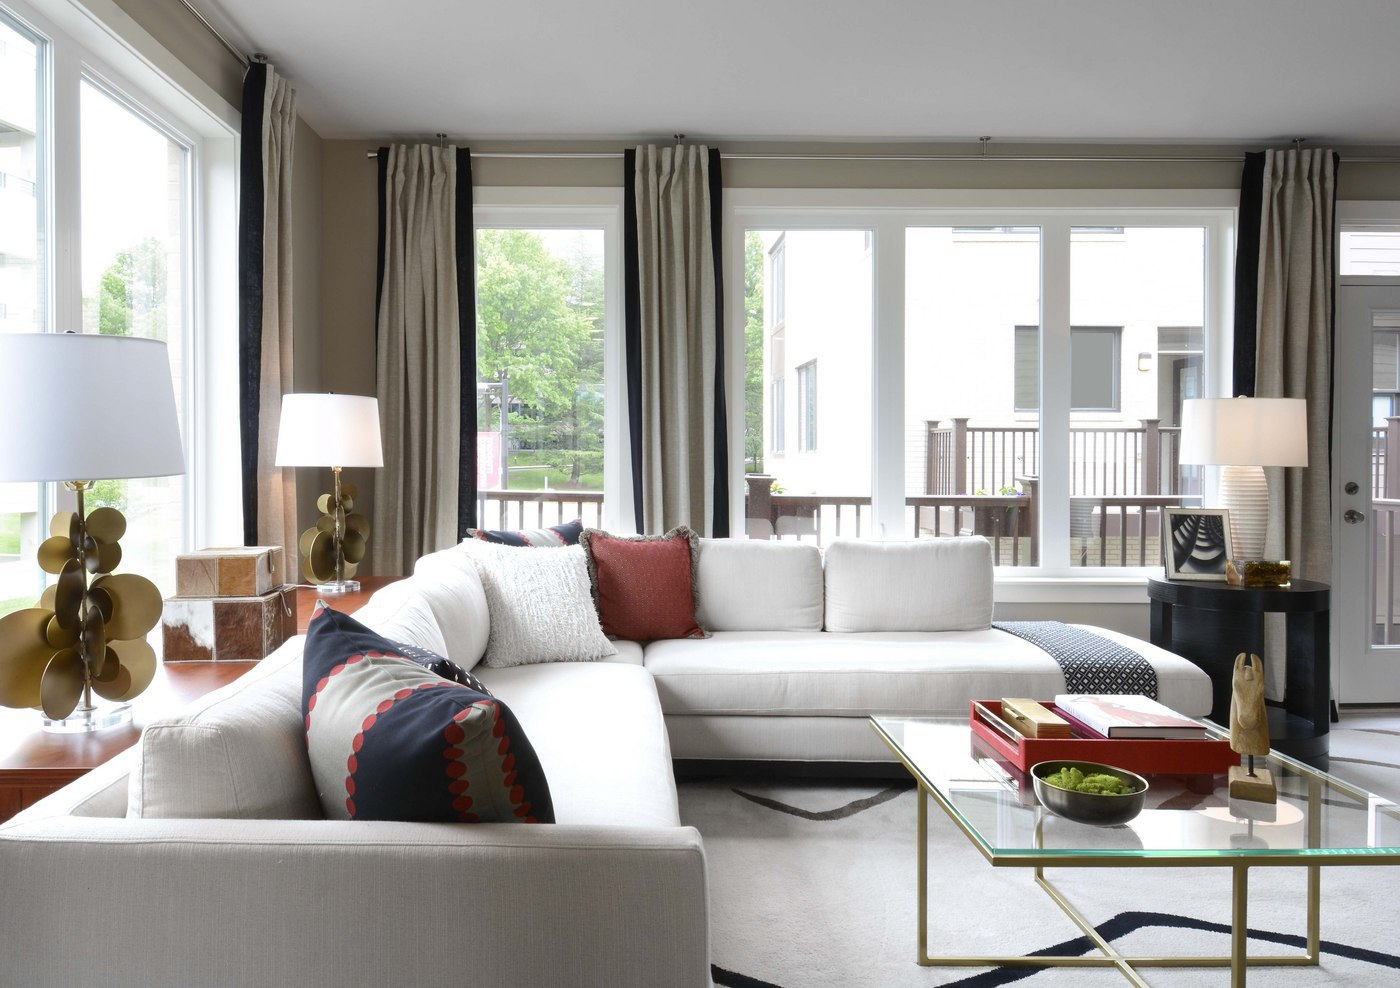 Expert tips on how to get the transitional design style in your home